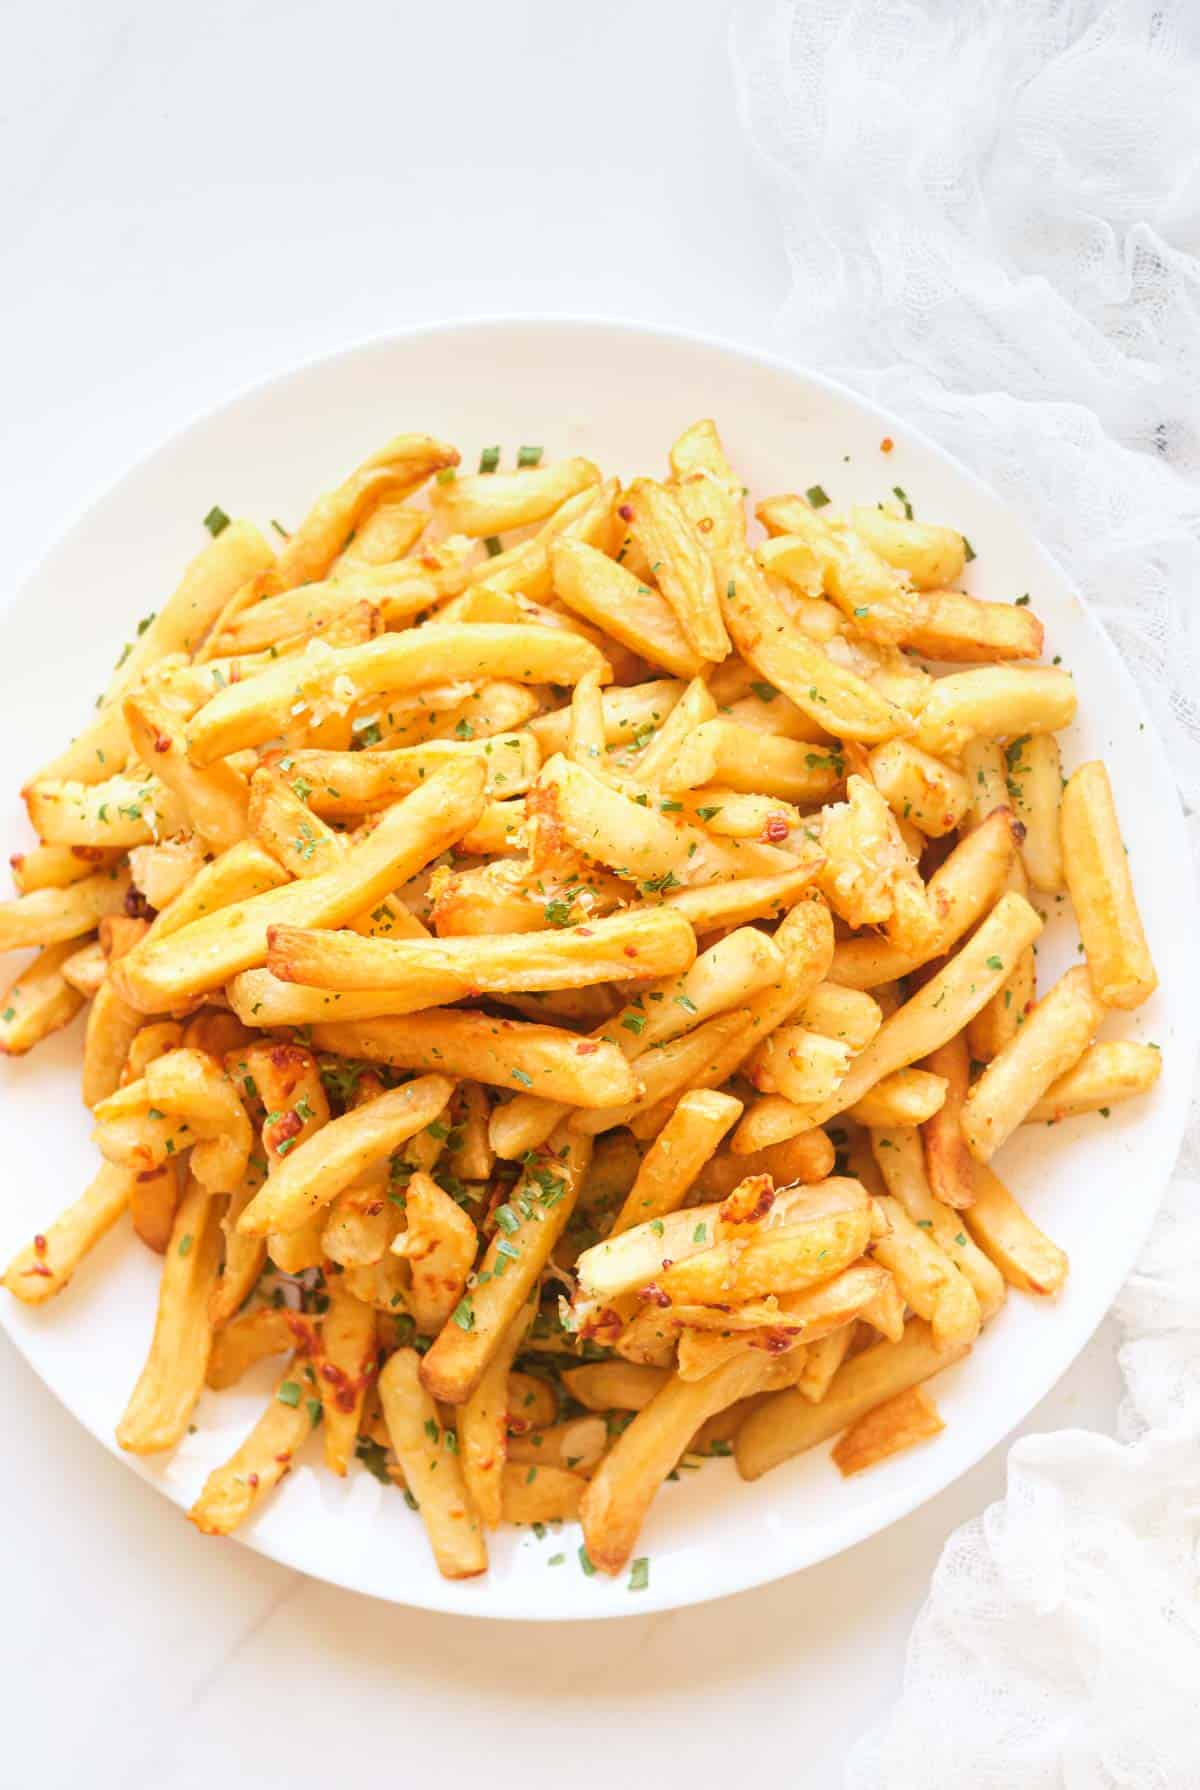 top down view of a plate filled with garlic parmesan fries